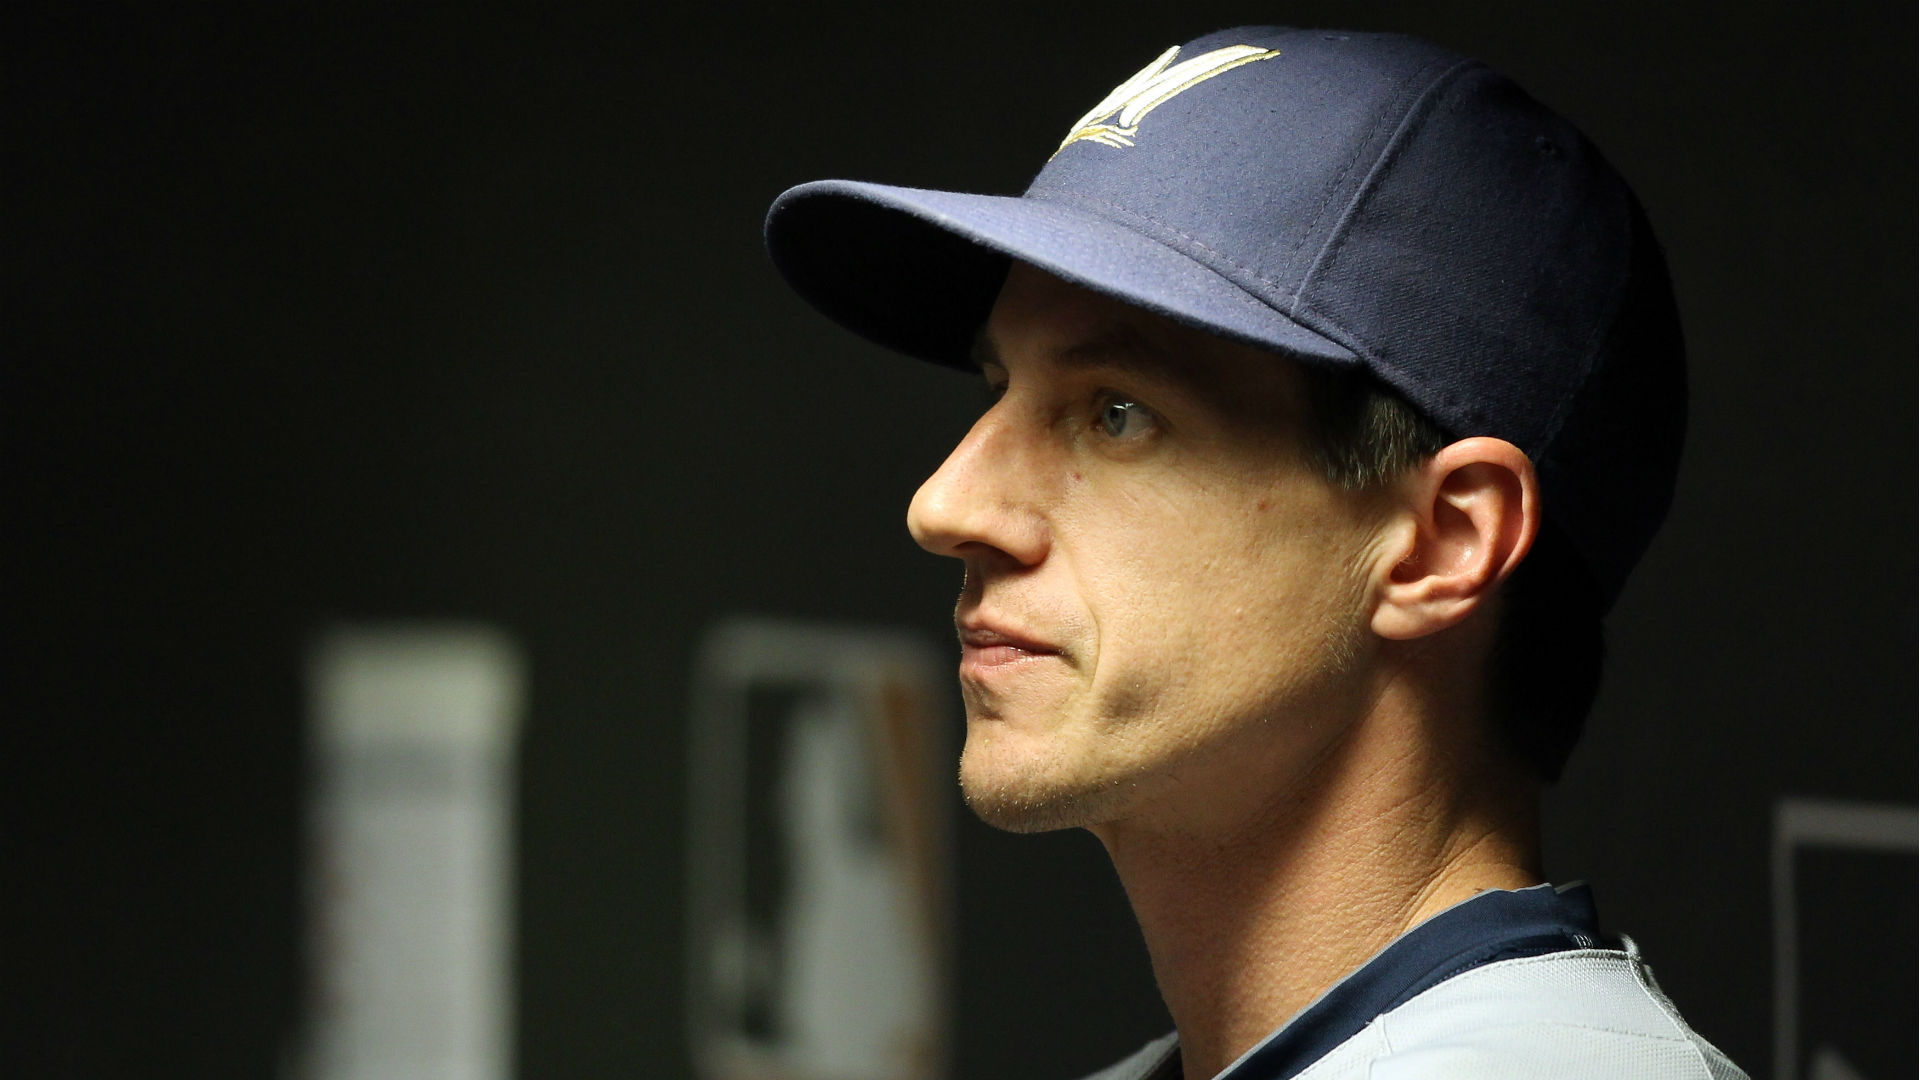 Report: Brewers set to hire Craig Counsell as new manager